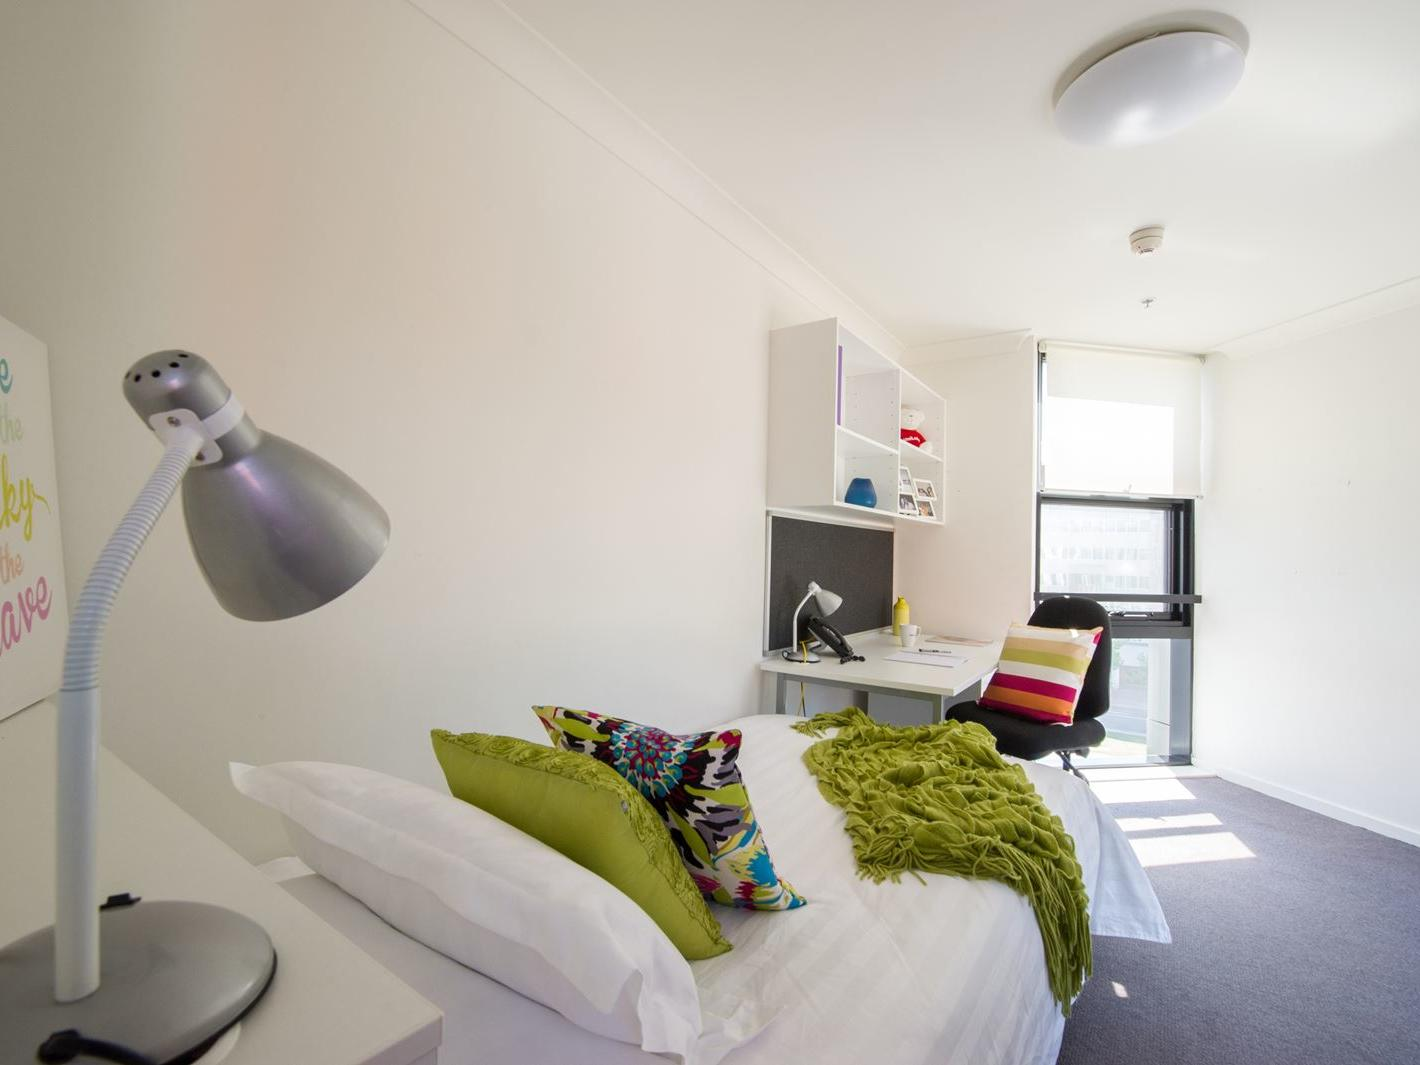 UniLodge @ ANU – Lena Karmel Lodge_Multishare ANU Campus Accommodation